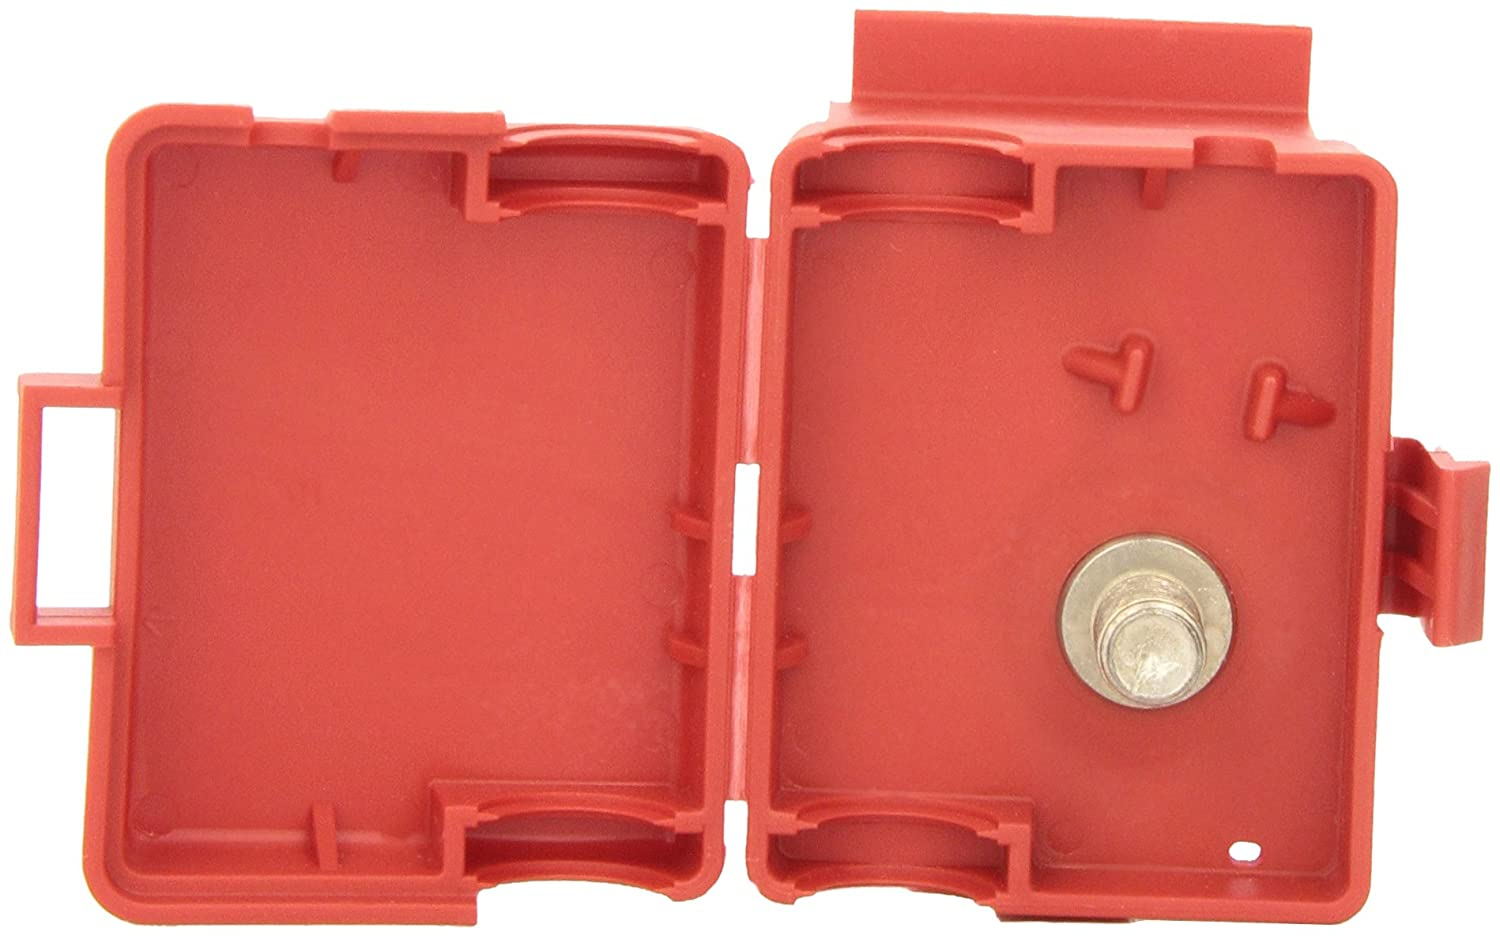 Genuine Gm 12191376 Battery Positive Cable Junction 2012 Chevy Traverse Fuse Box Removal Block Automotive